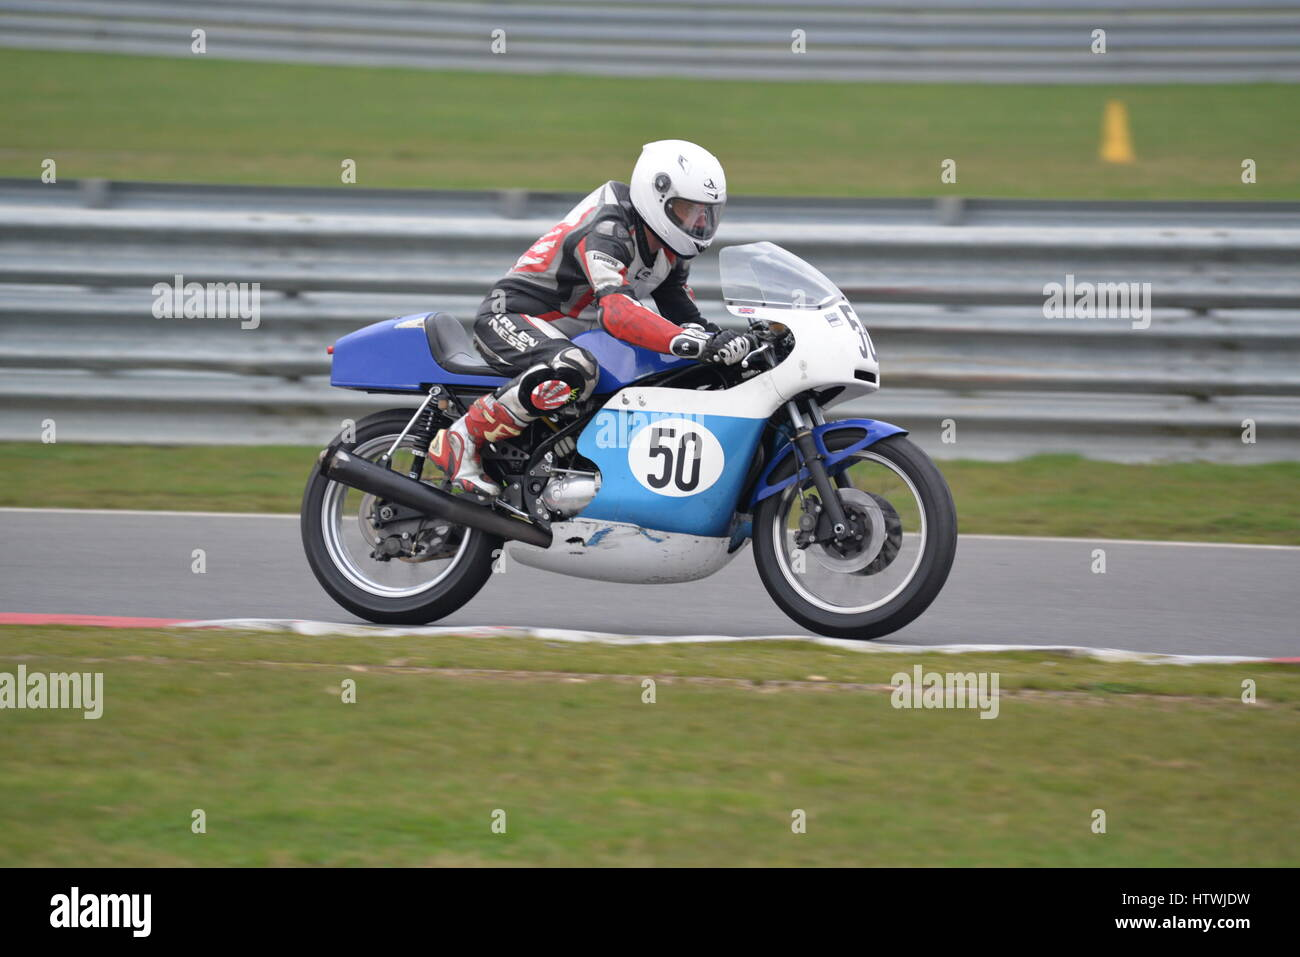 2f567fd9 Classic Bike Race Stock Photos & Classic Bike Race Stock Images - Alamy